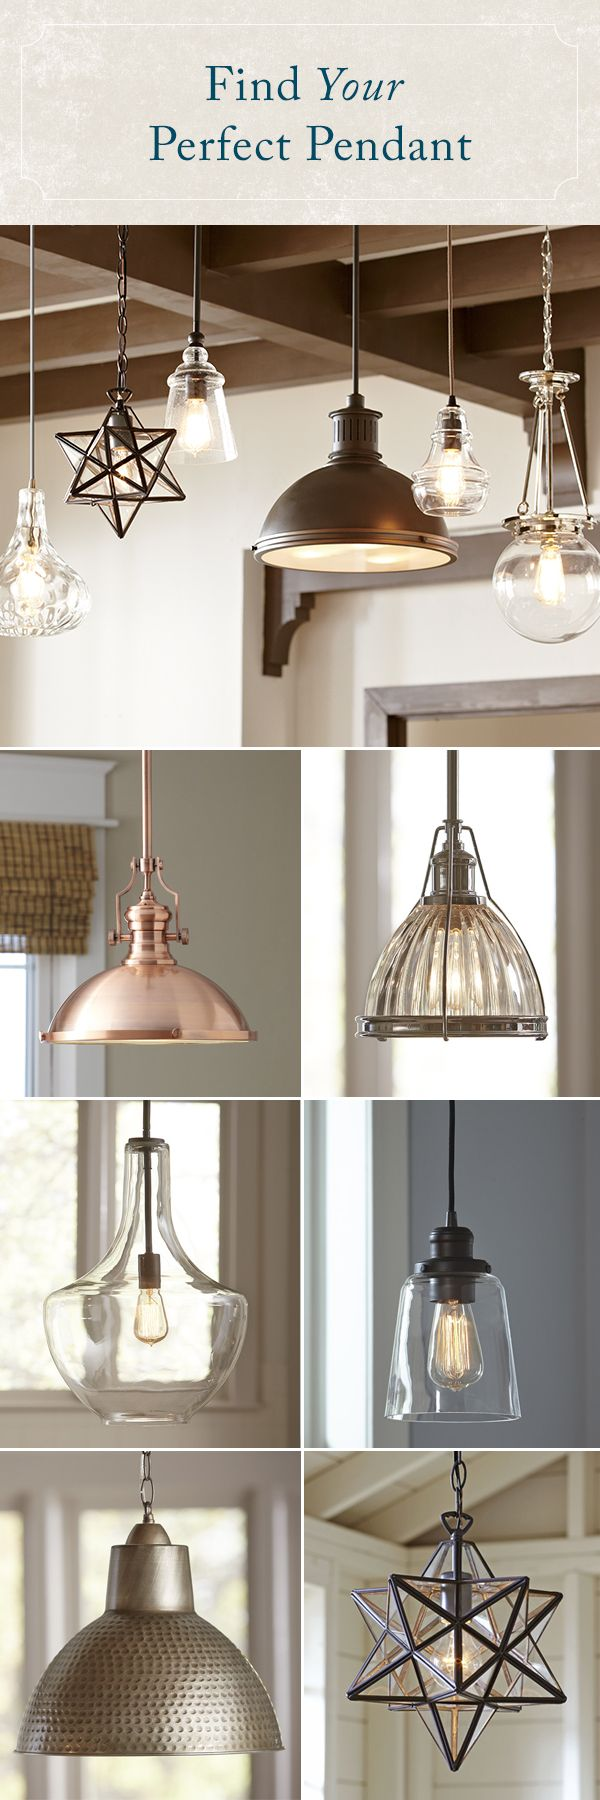 Farmhouse Light Fixtures183 best Light Fixture images on Pinterest   Lighting ideas  . Farmhouse Lighting Fixtures. Home Design Ideas